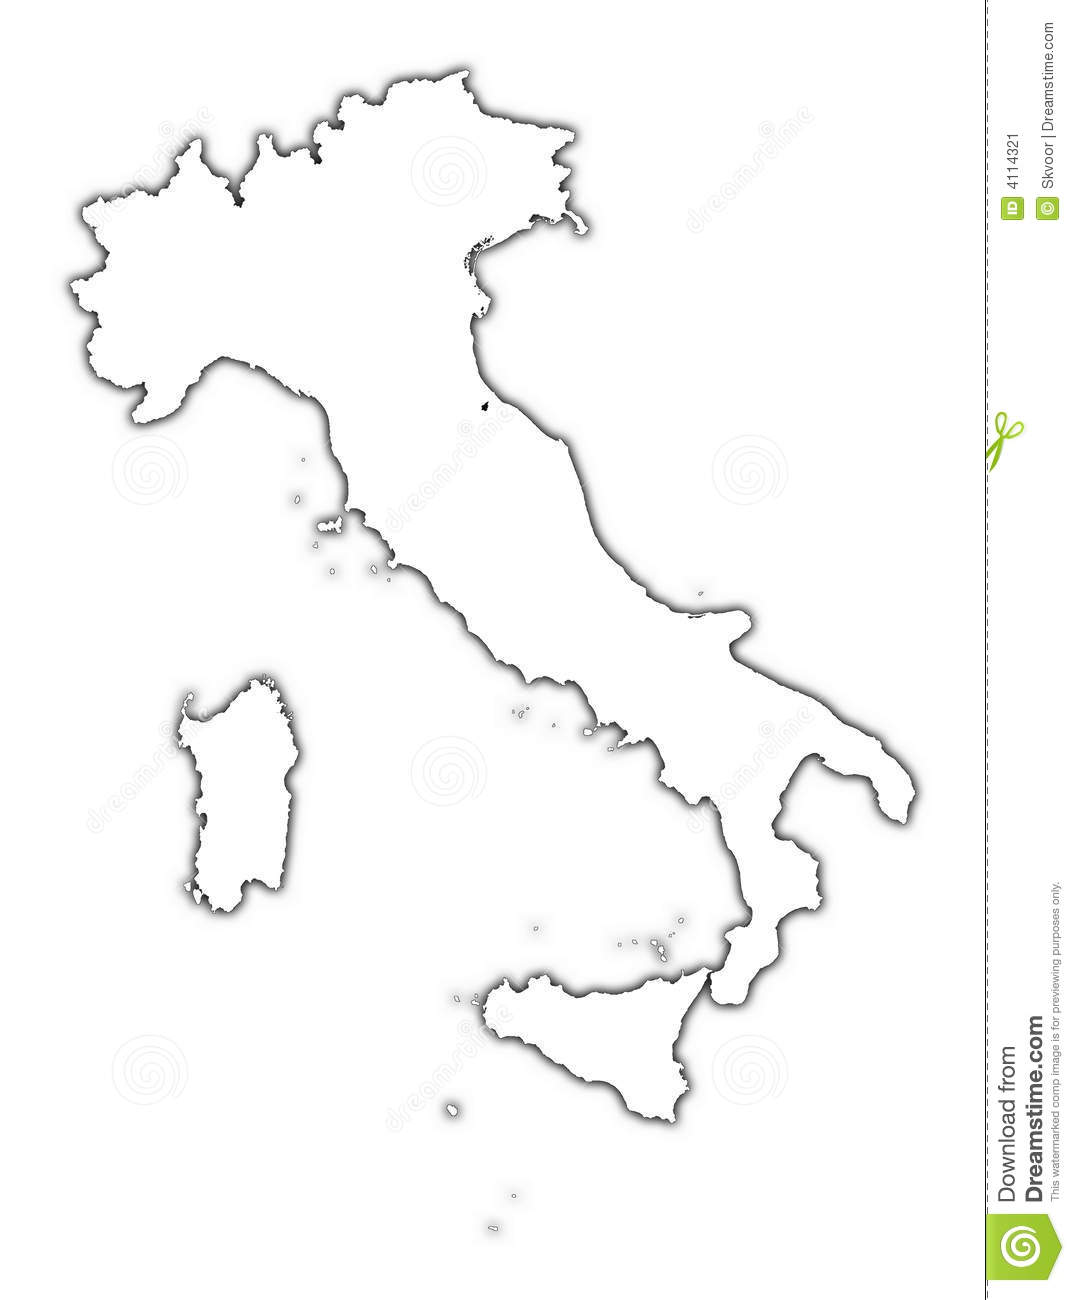 Italy Outline Clipart.